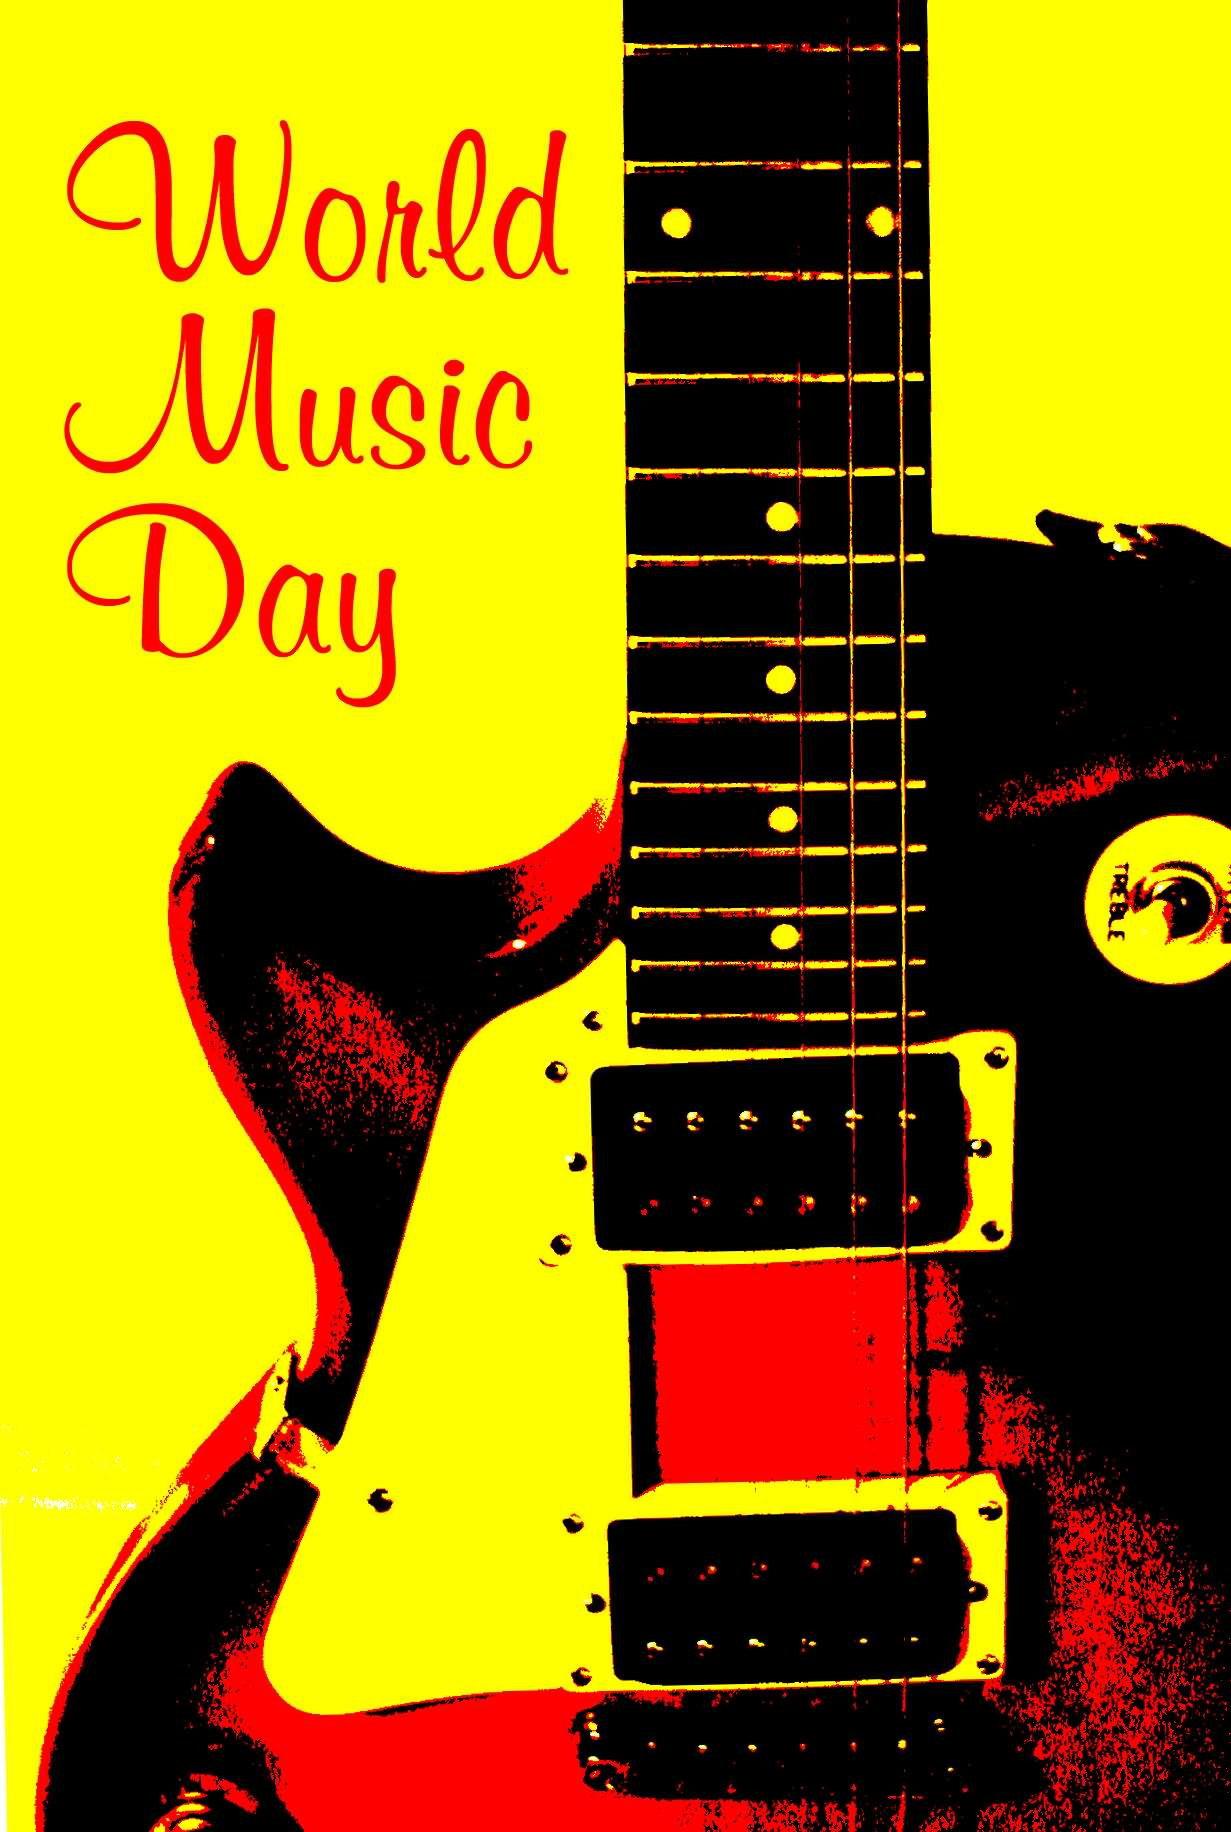 42 Incredible Pictures Of World Music Day Greetings 1231x1832